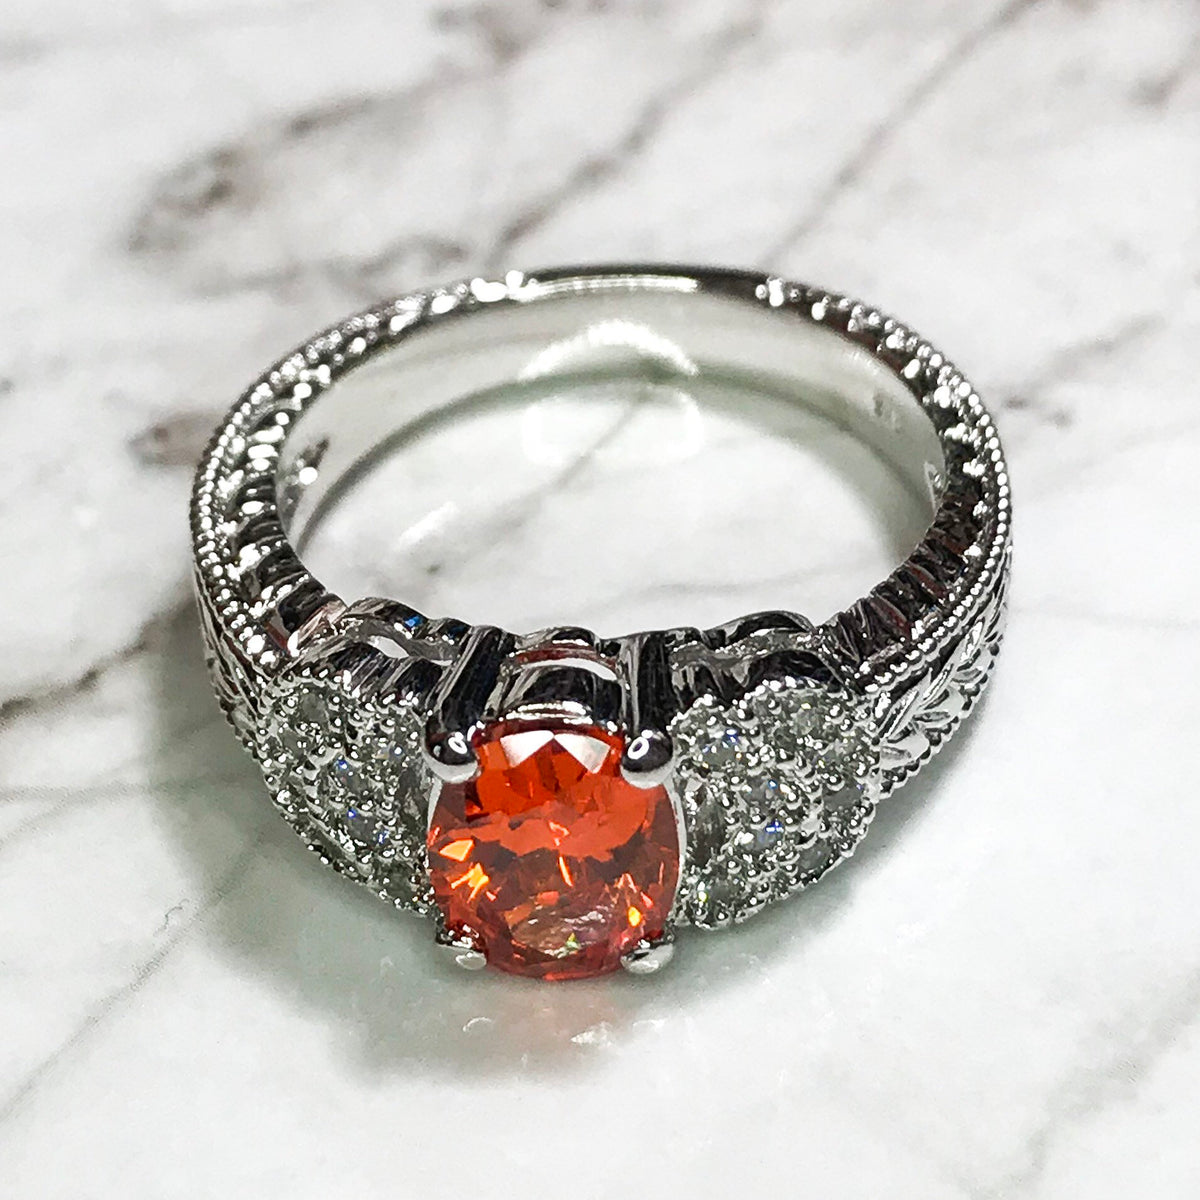 NEW 14K White Gold Layered on Sterling Silver Round Orange Stone Ring